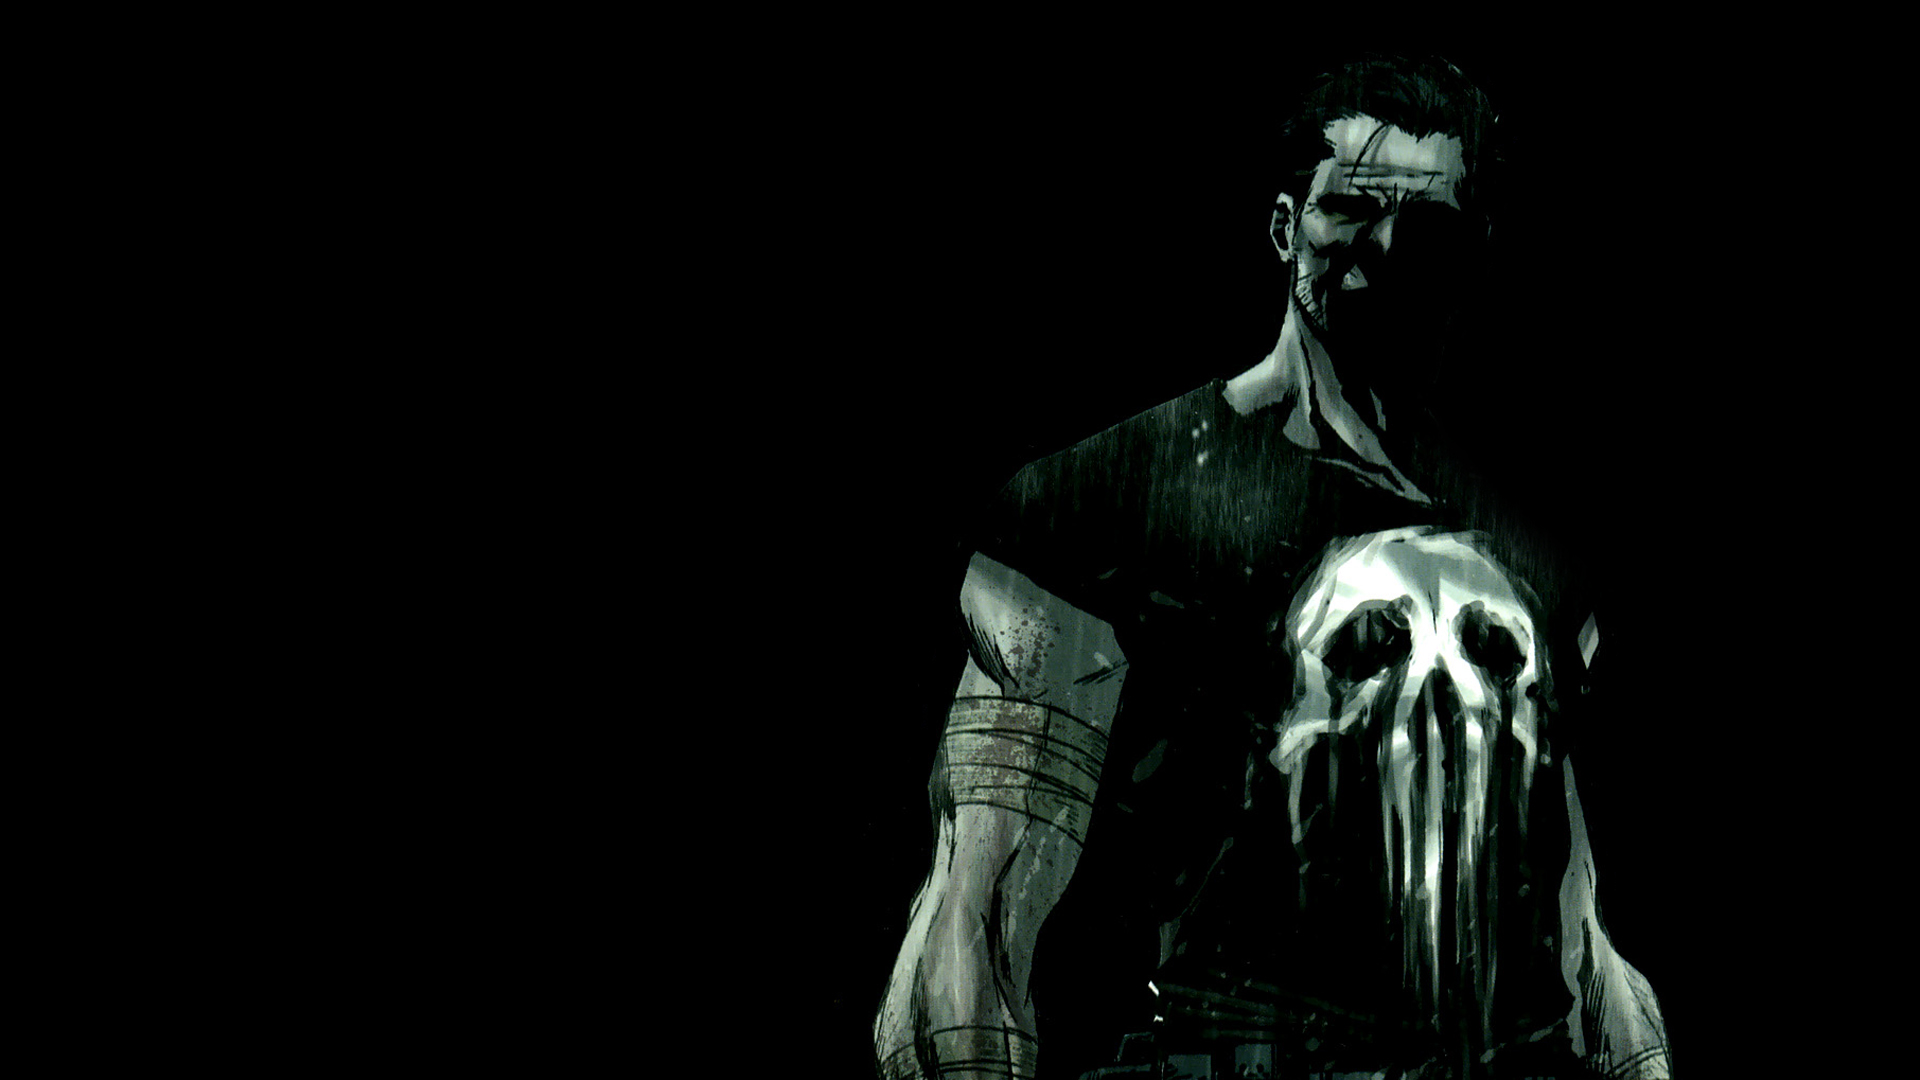 the punisher, daredevil, marvel, netflix, noticias de series, jon bernthal